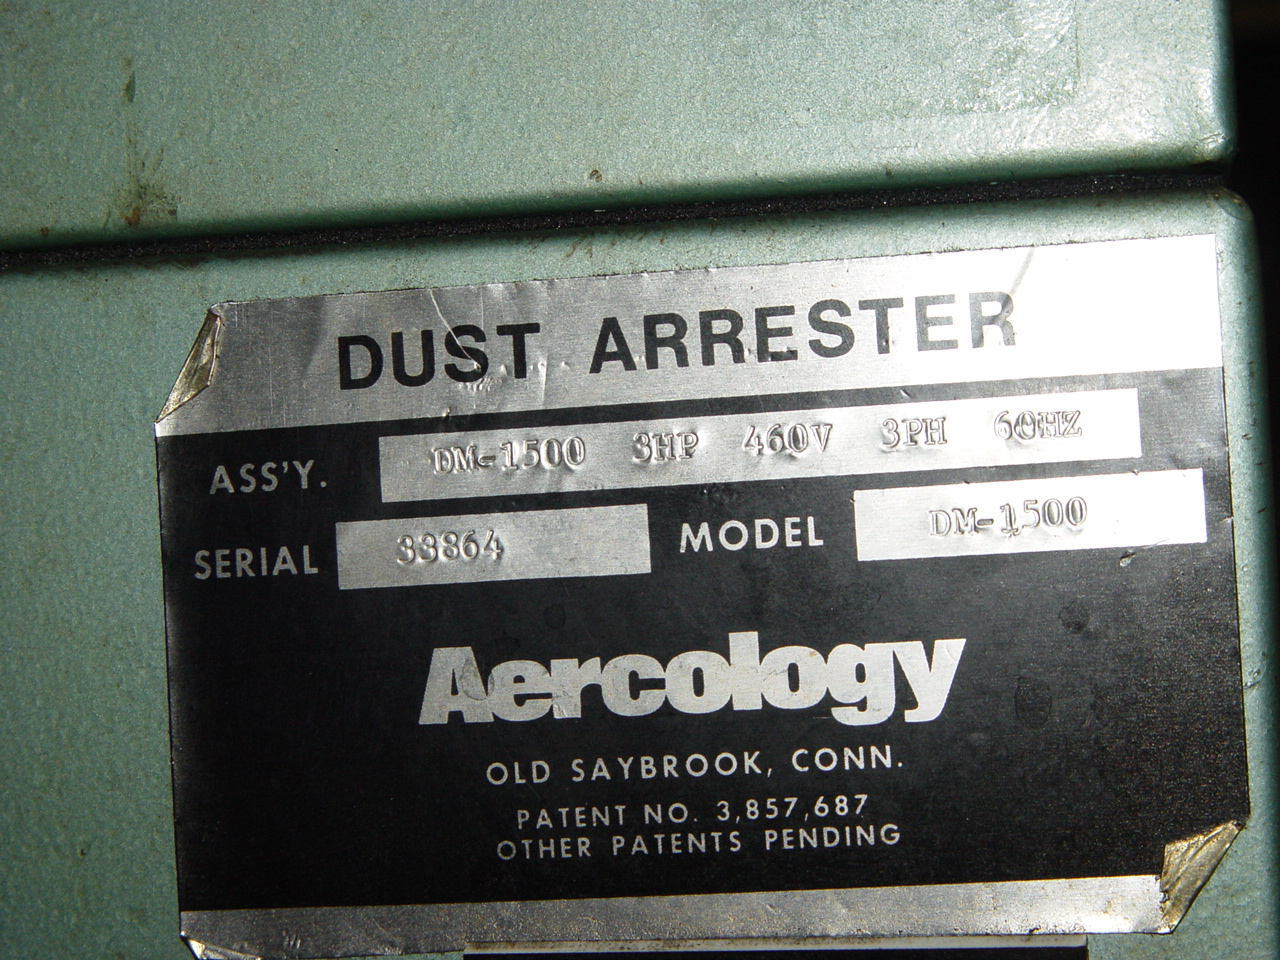 Aercology Dust Arrester Dust Collector